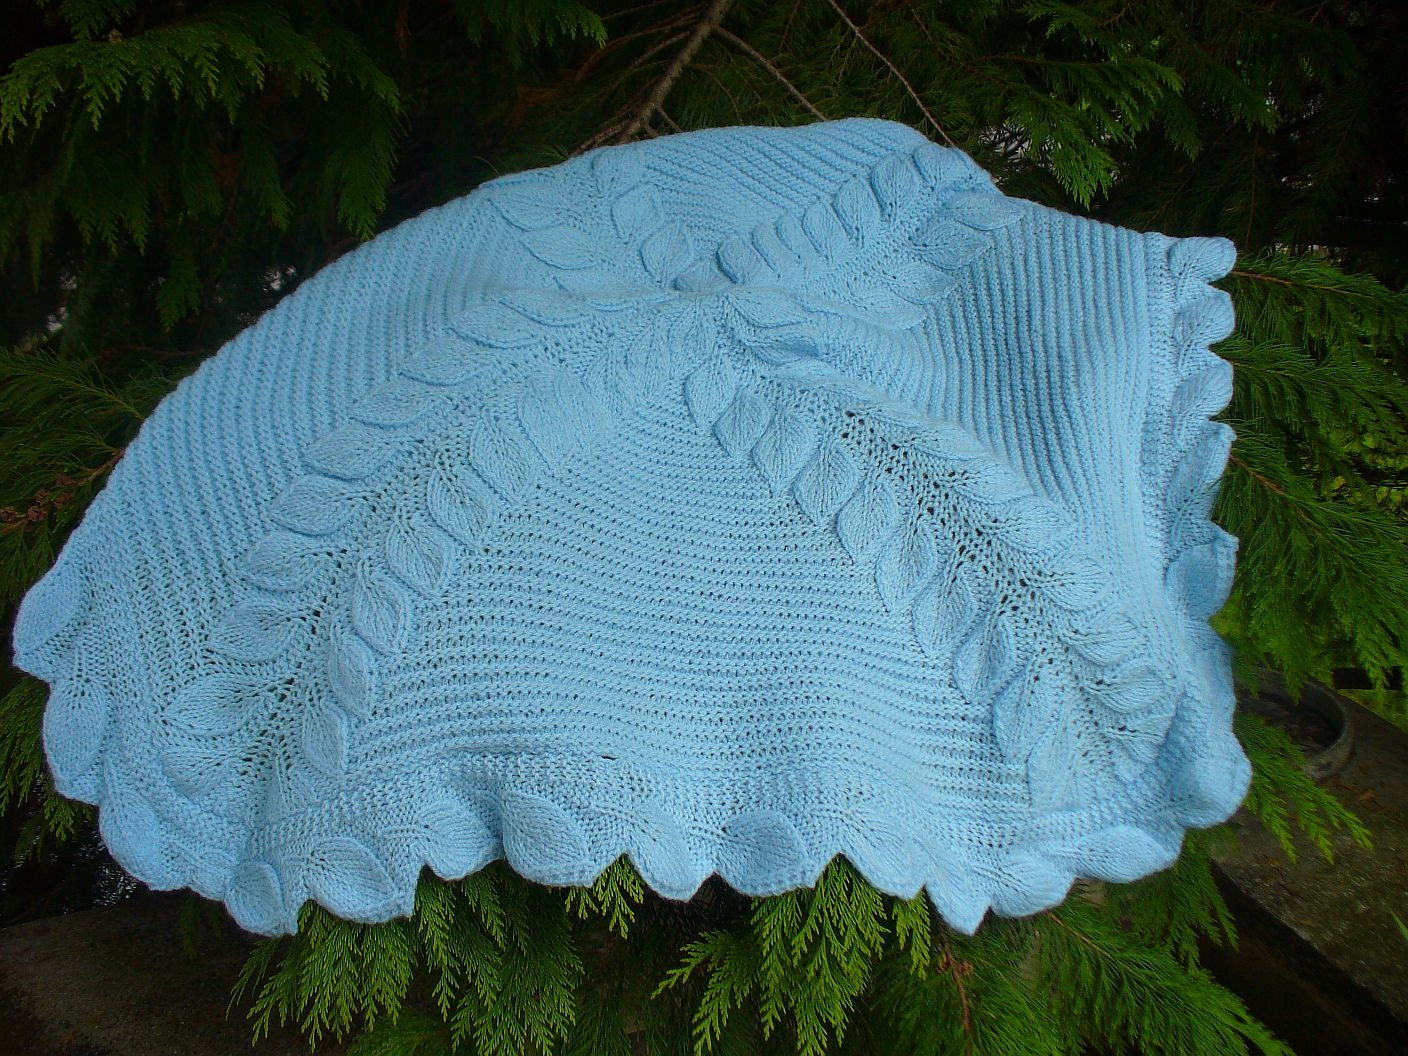 Vogue Knitting Leaf Blanket Pattern : Leaves Baby Blanket Knitting Pattern